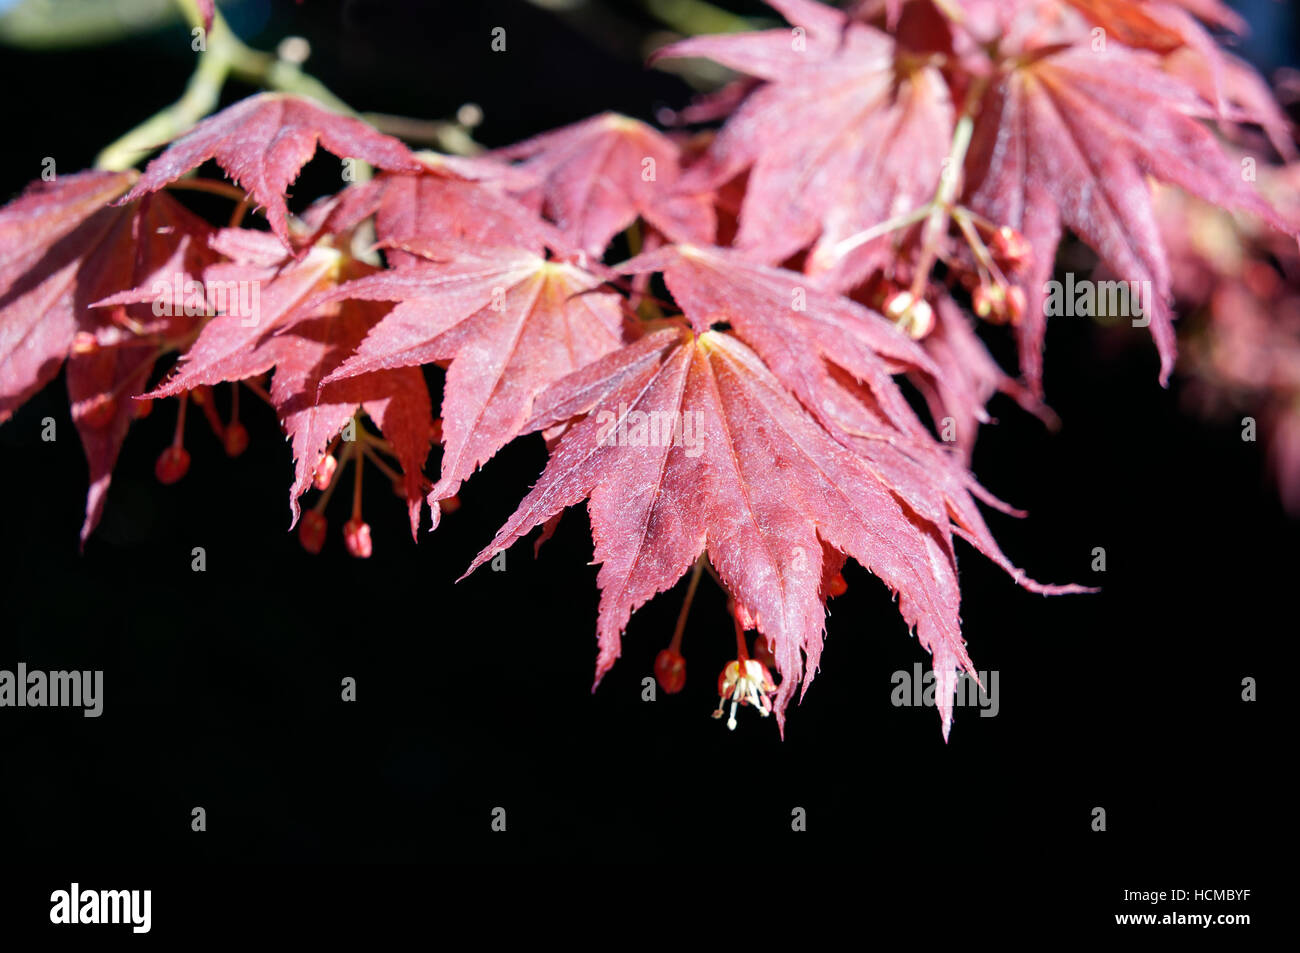 Close-up of red Japanese maple Acer palmatum tree leaves in spring, Vancouver, British Columbia, Canada Stock Photo